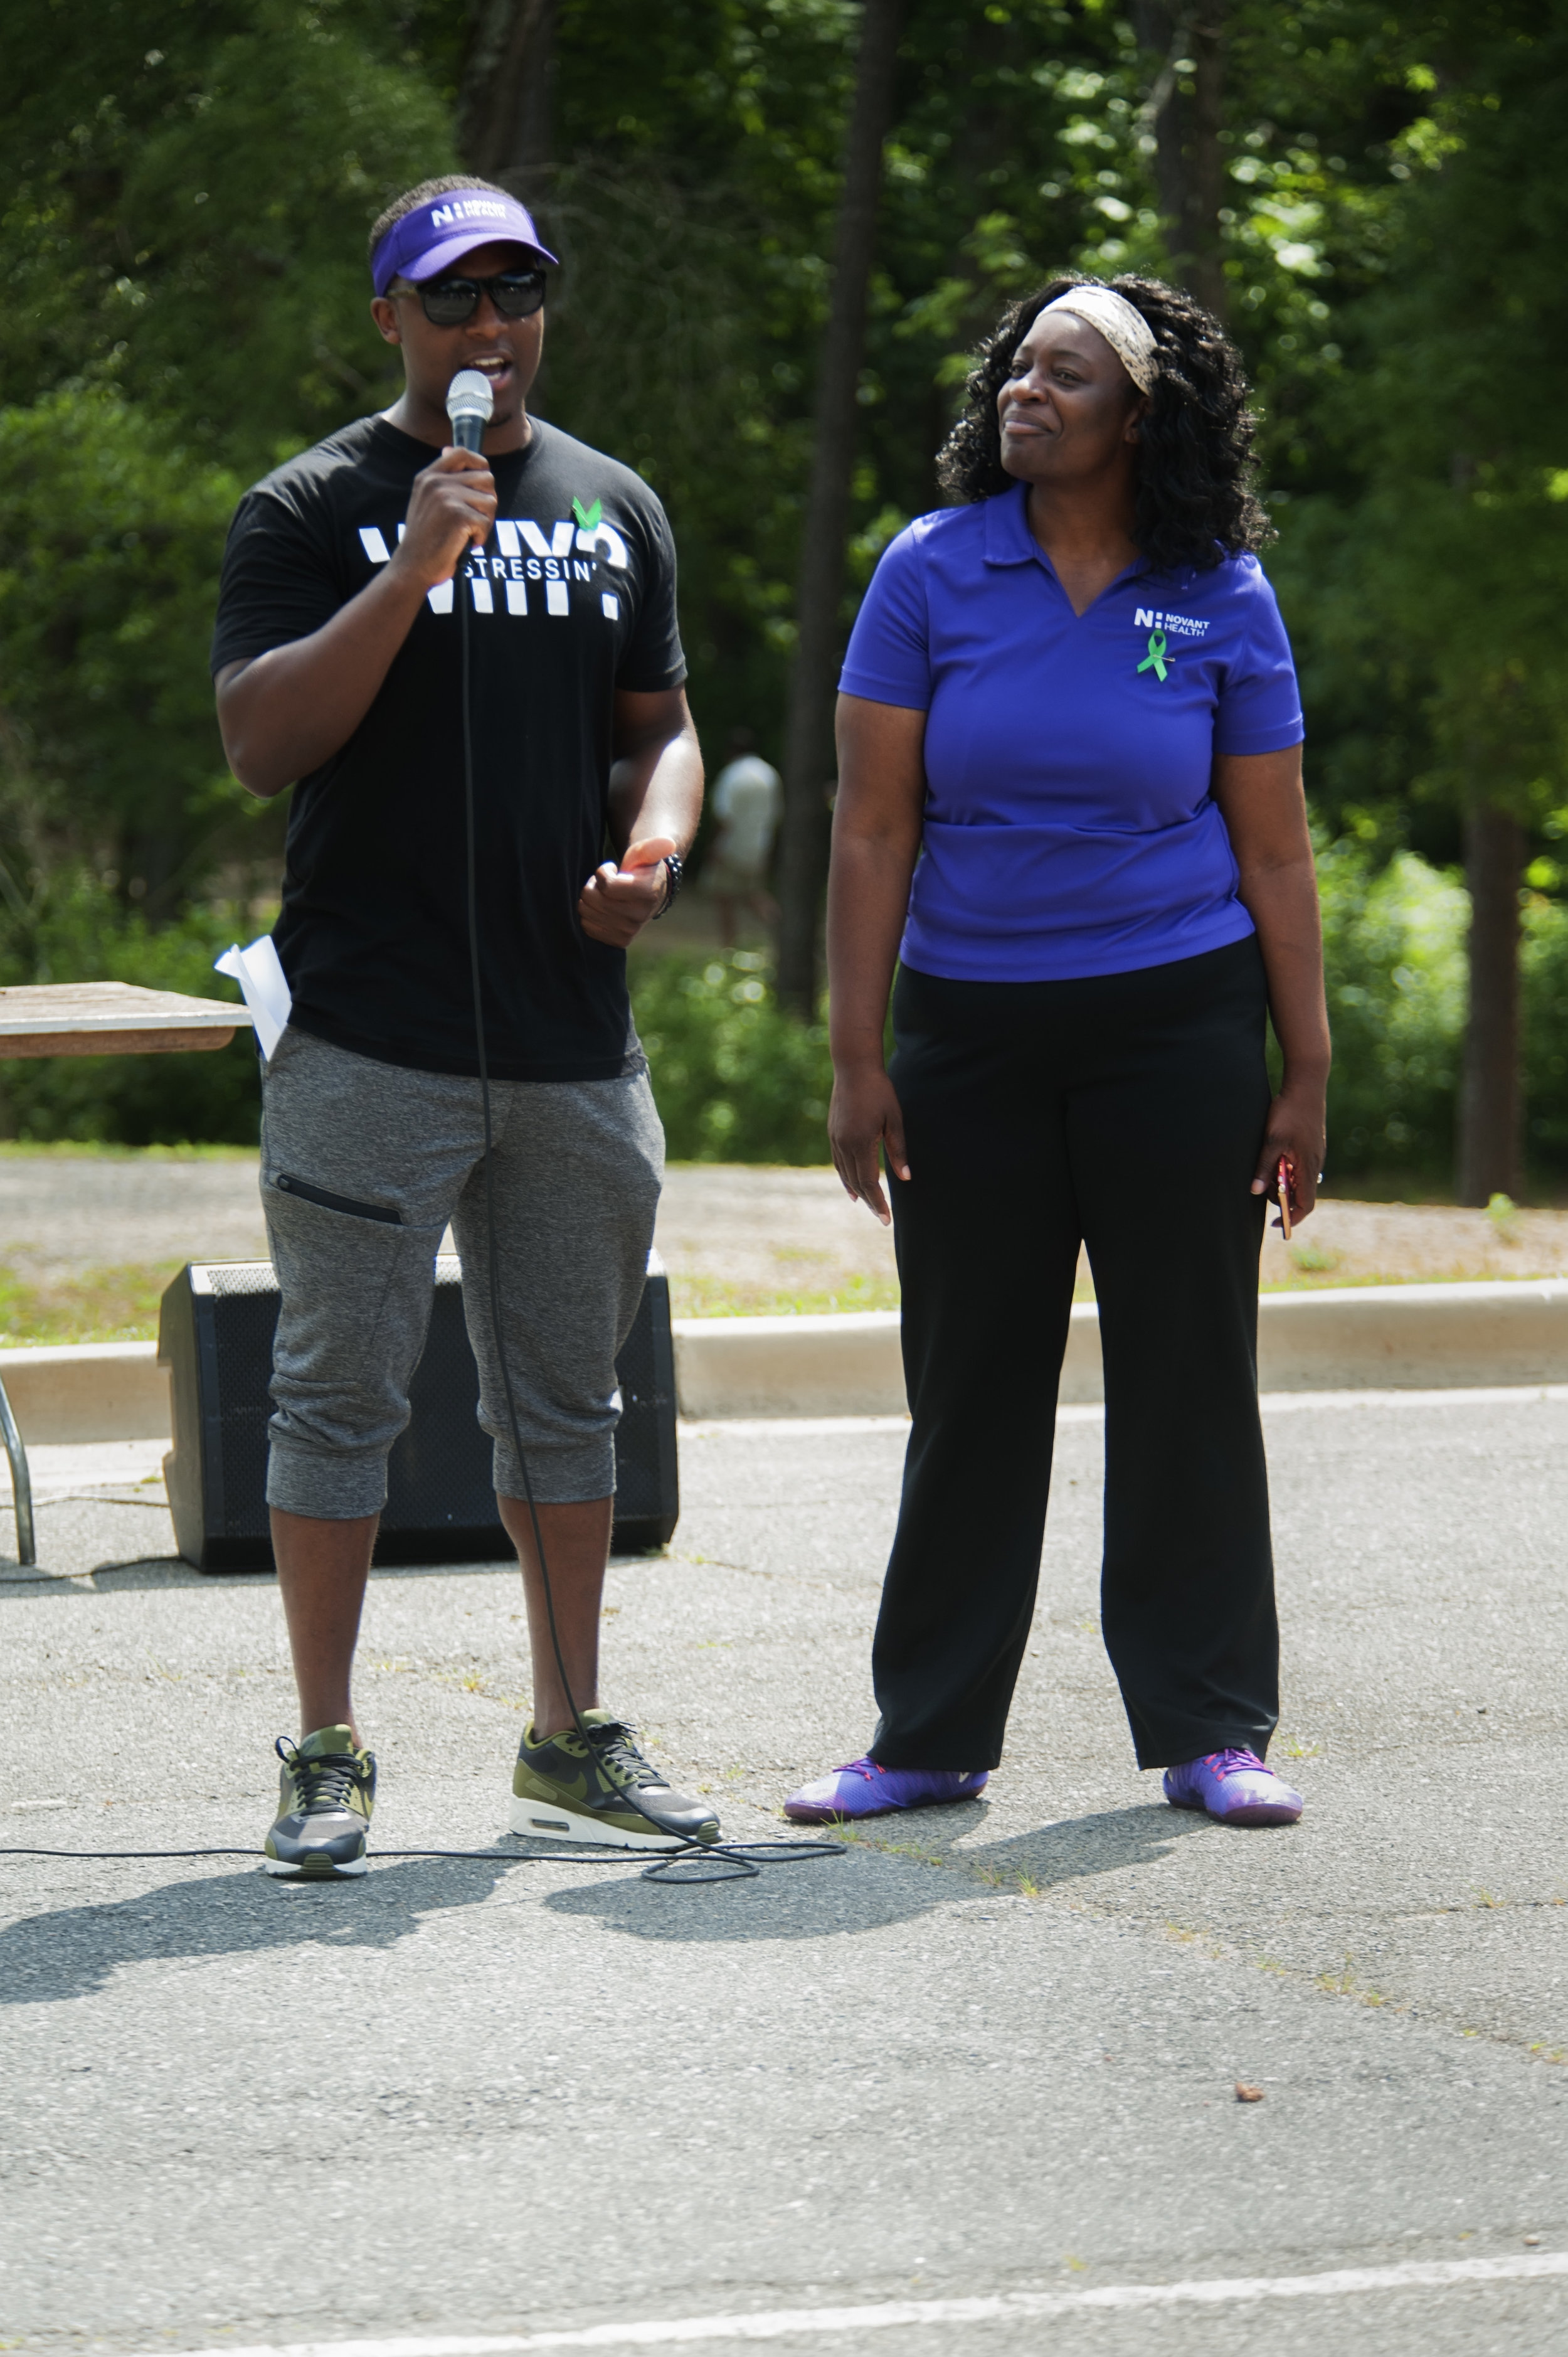 2nd Annual Let's Talk About It Mental Health Awareness Walk @ Park Rd Park 5-20-17 by Jon Strayhorn 141.jpg